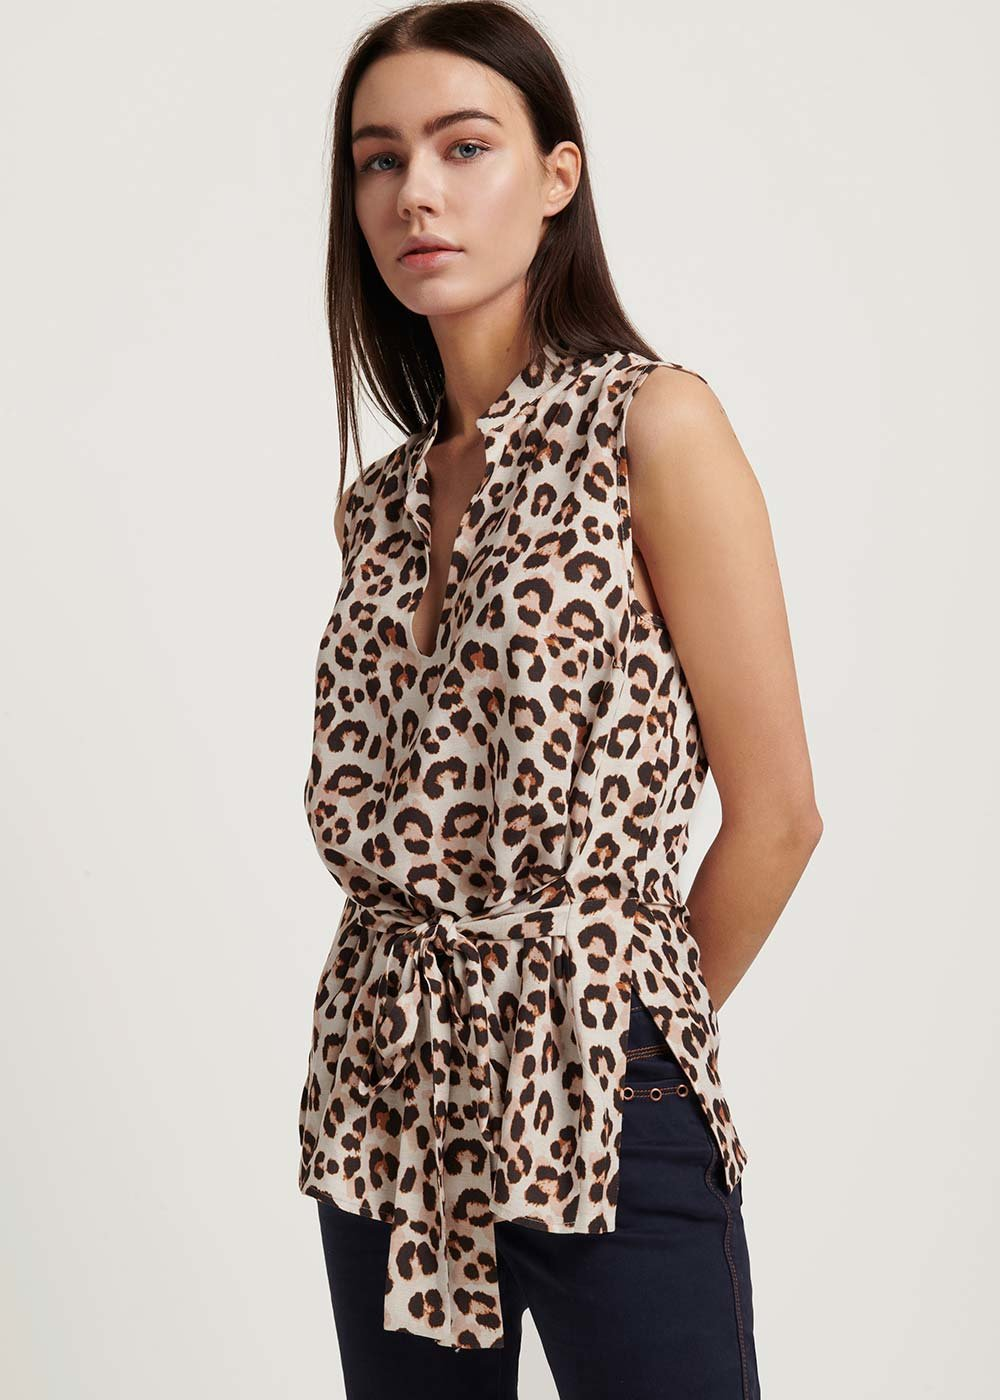 Thorn top with spotted print - L.beige\ Coccio Fantasia - Woman